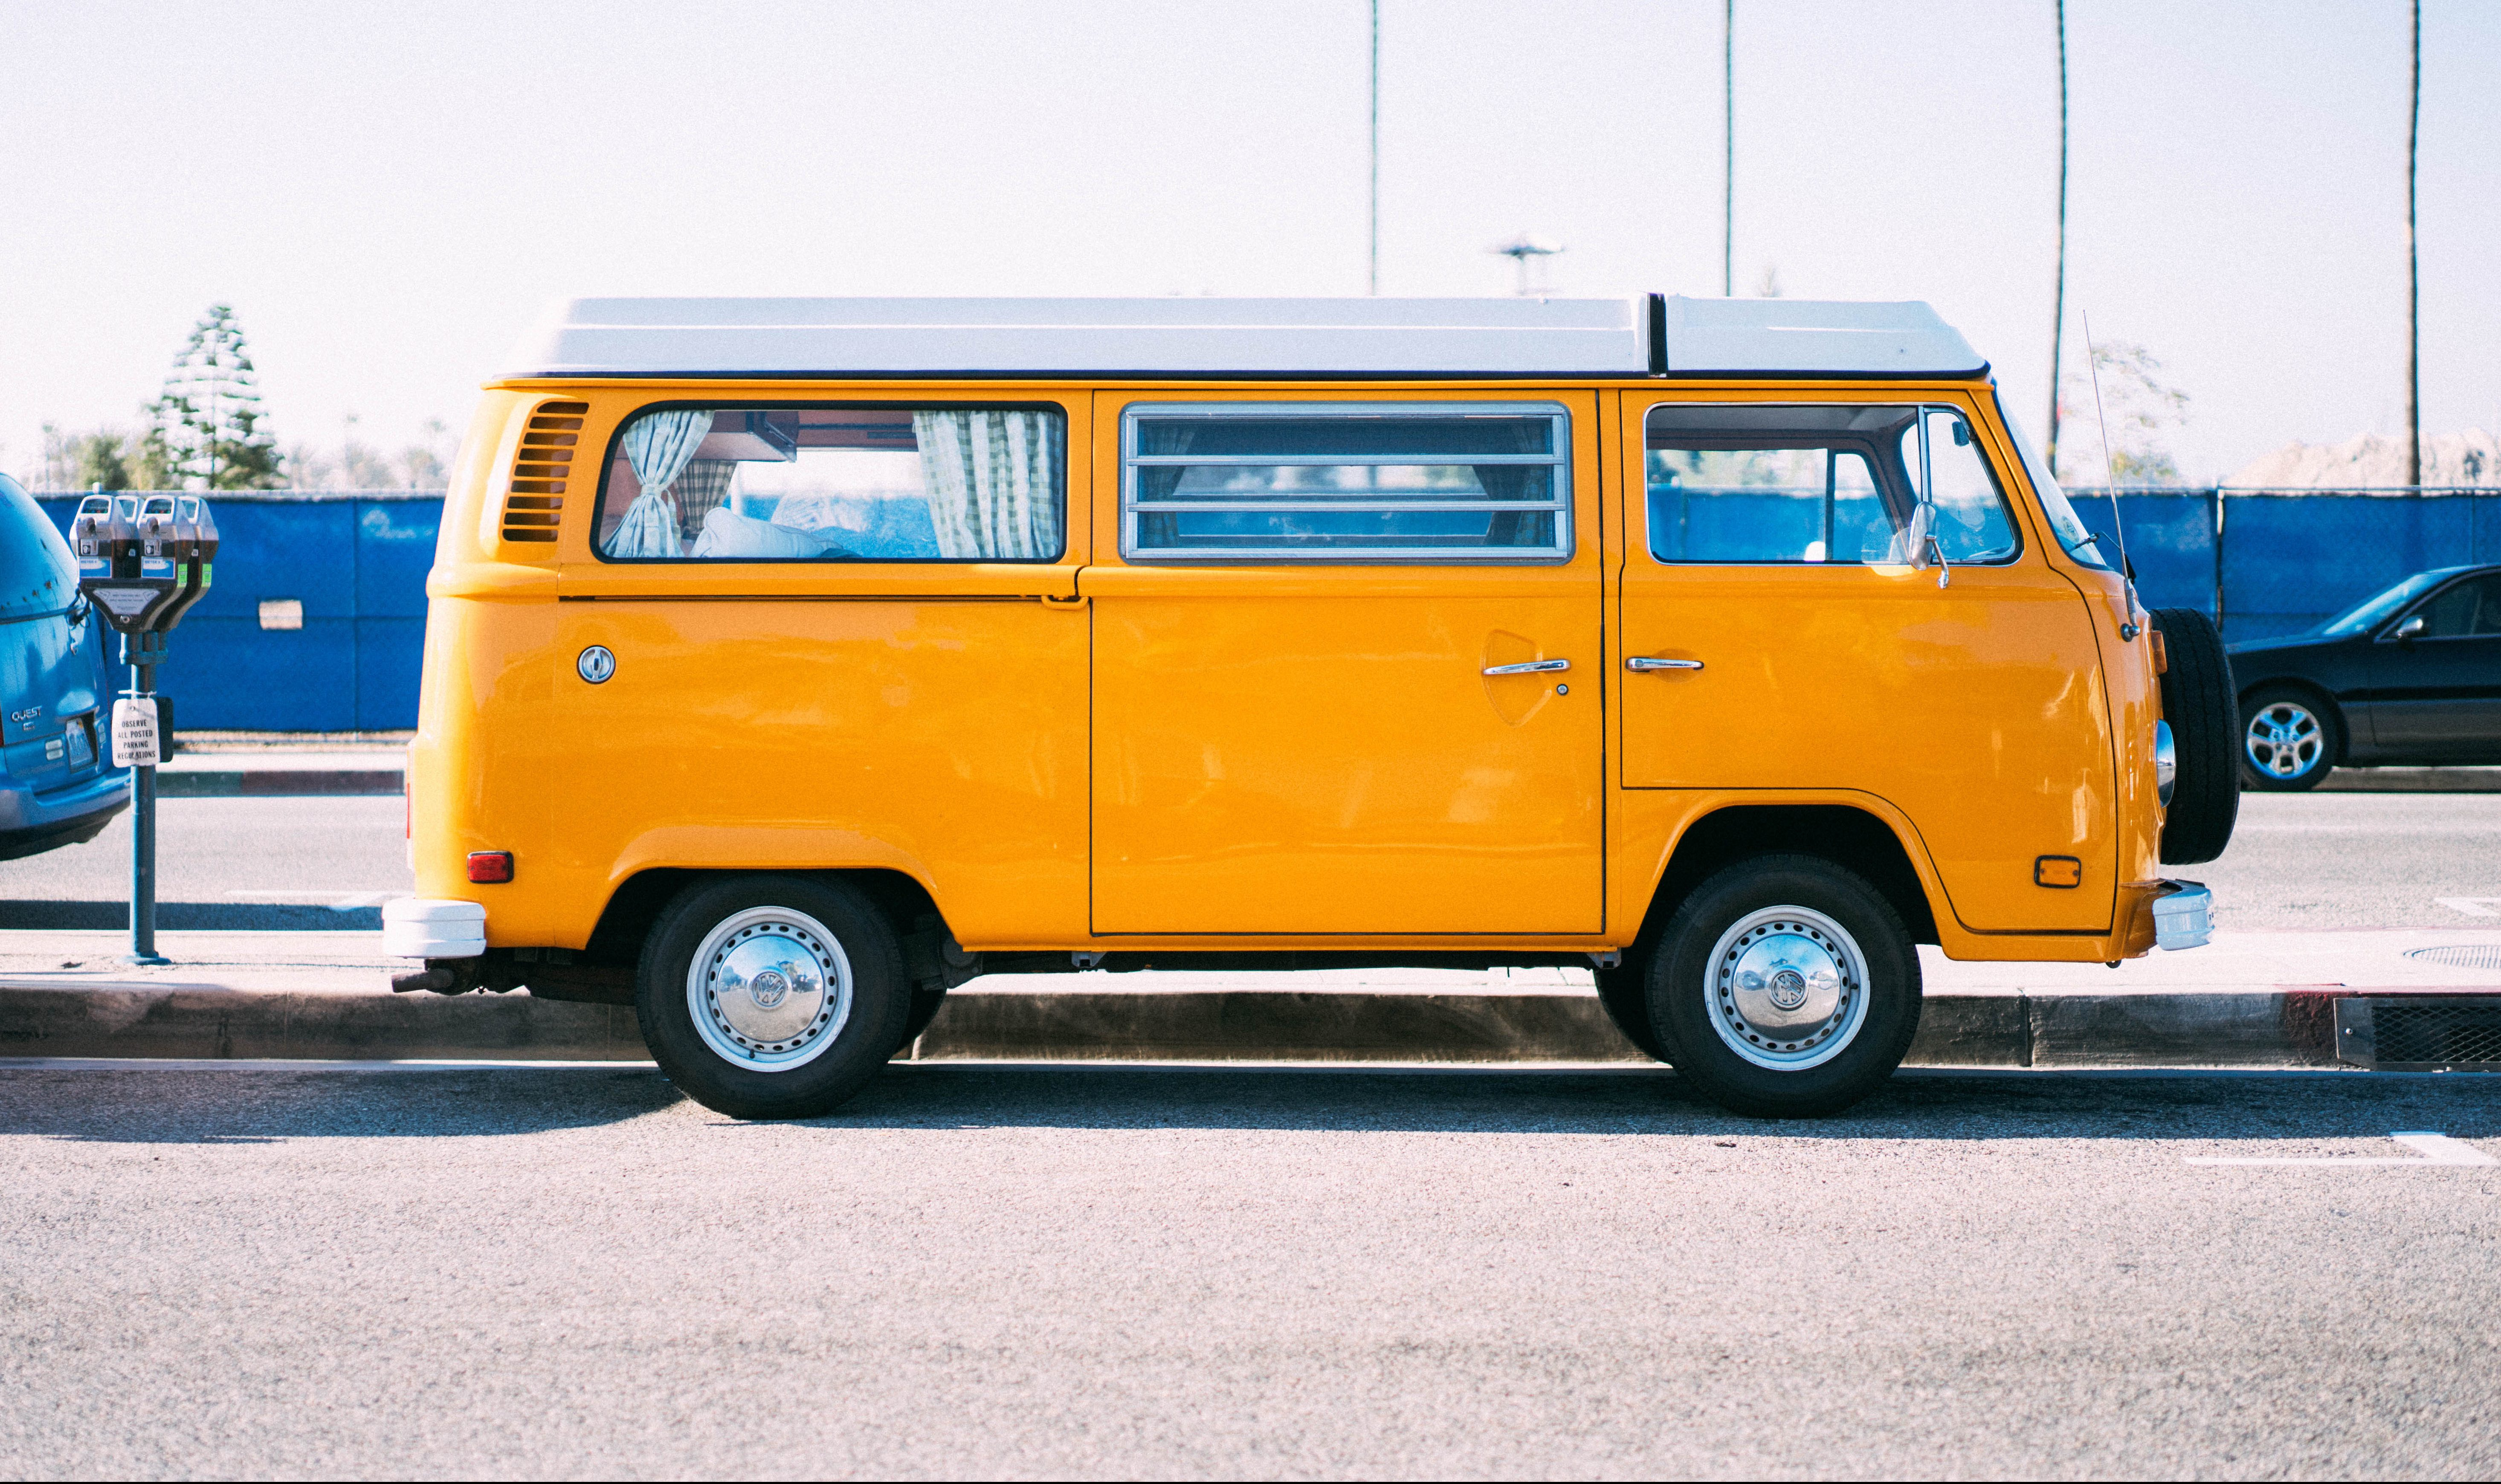 vanlife: The magic recipe that caused hippies to fall in with ...